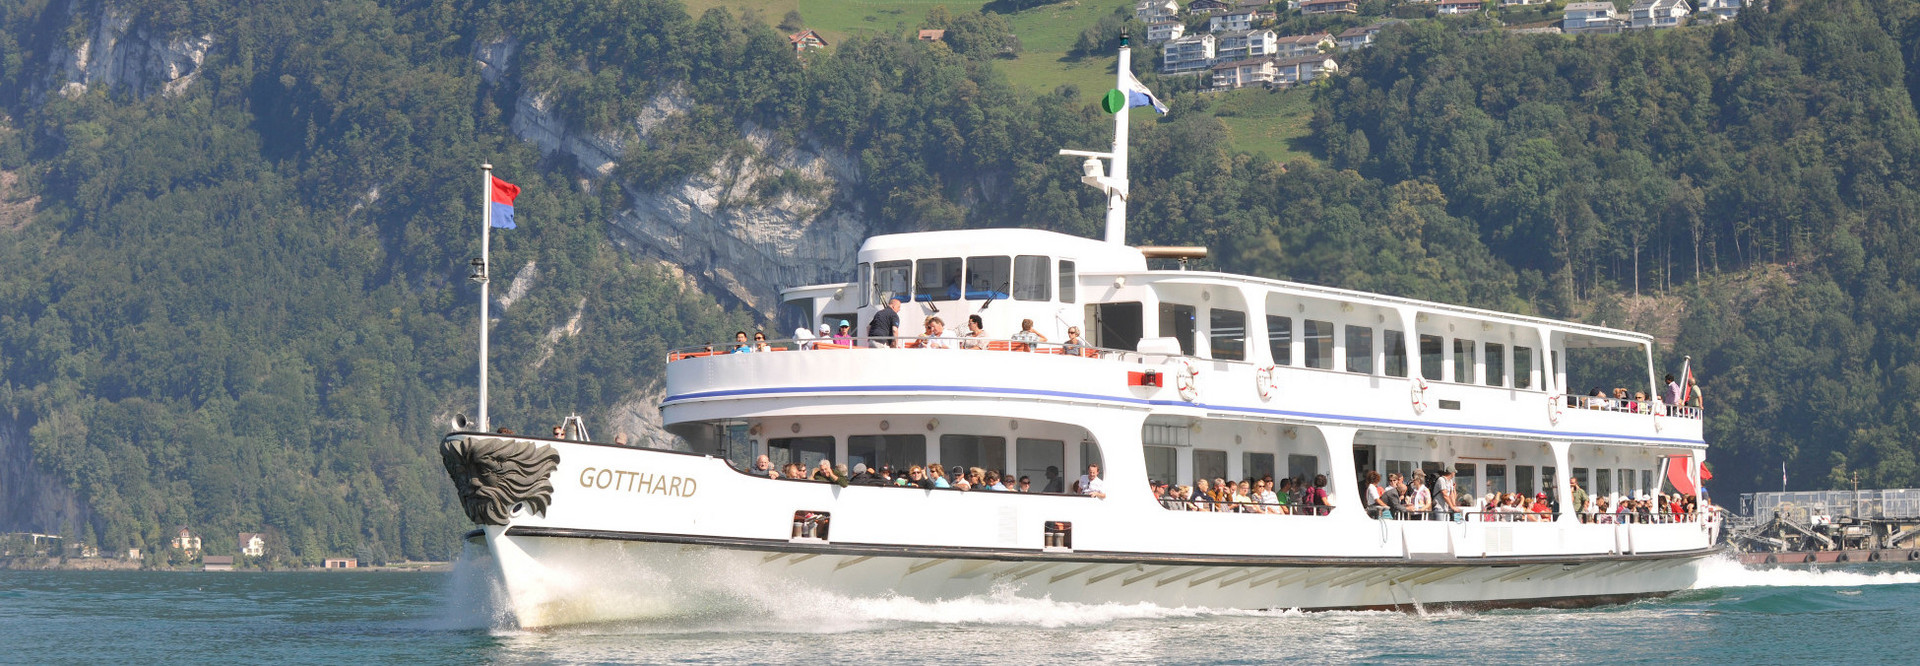 The motor vessel Gotthard sails on Lake Lucerne on a beautiful summer day.